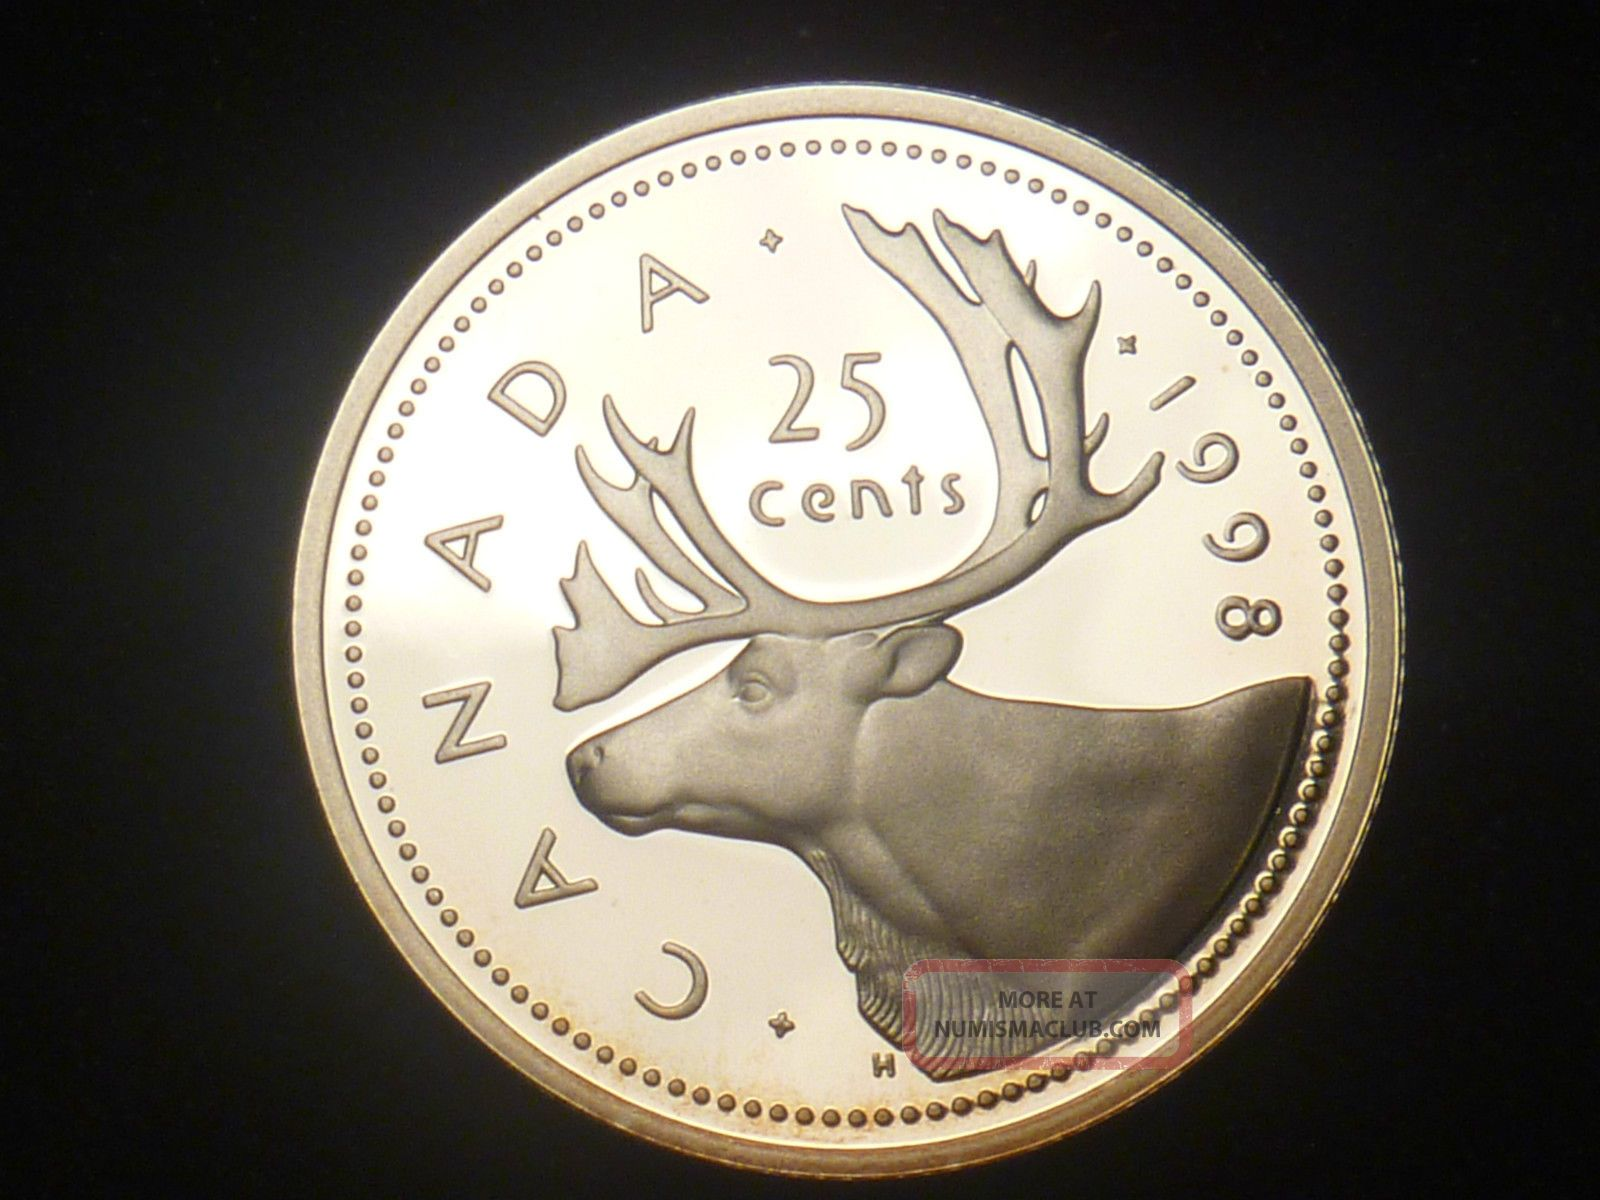 1998 Canada 25 Cents Proof Silver.  925 Rcm - Only 89 000 Minted Coins: Canada photo